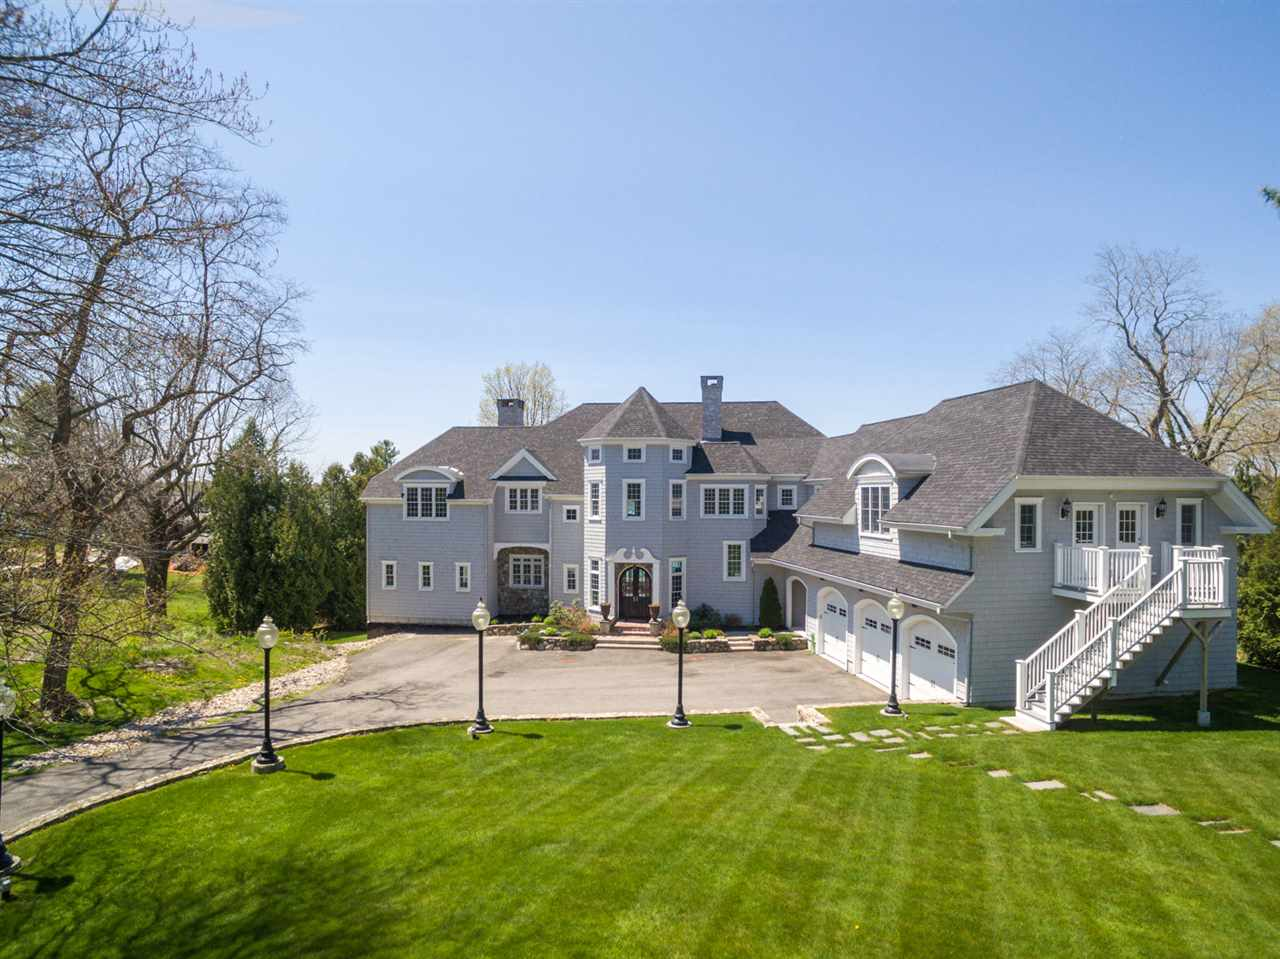 kittery point divorced singles It is located in , kittery, maine, and is in the 03905 zip/post code area this home of 3,868 sqft was built in 1850 and is on a 345 acres lot the sotheby's international realty network also has property listings in cities near kittery, including kittery, new castle, portsmouth, newcastle, kittery point and york harbor.